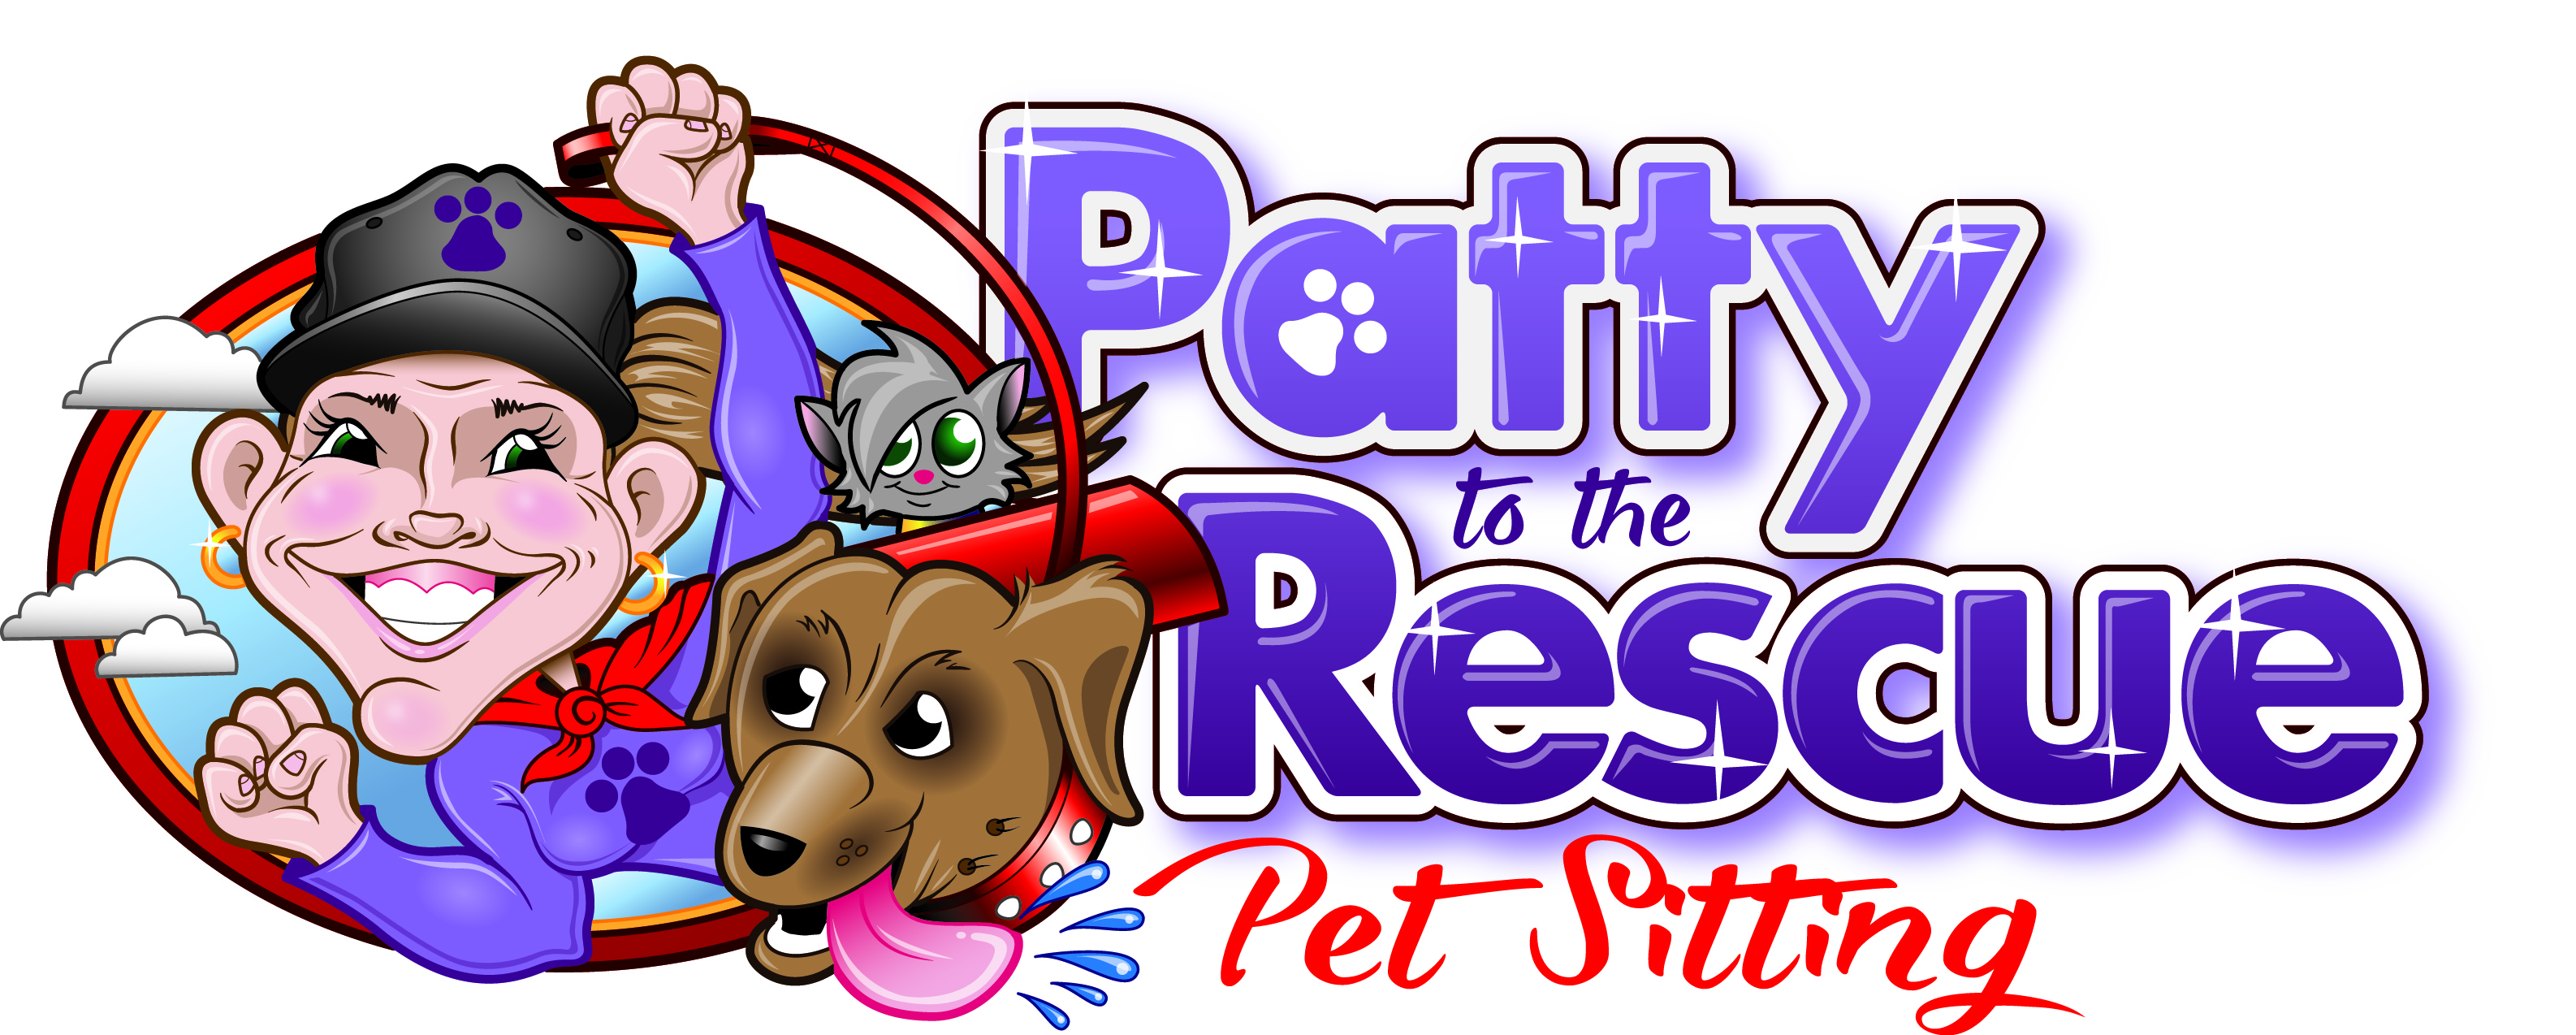 Patty to the Rescue Pet Sitting